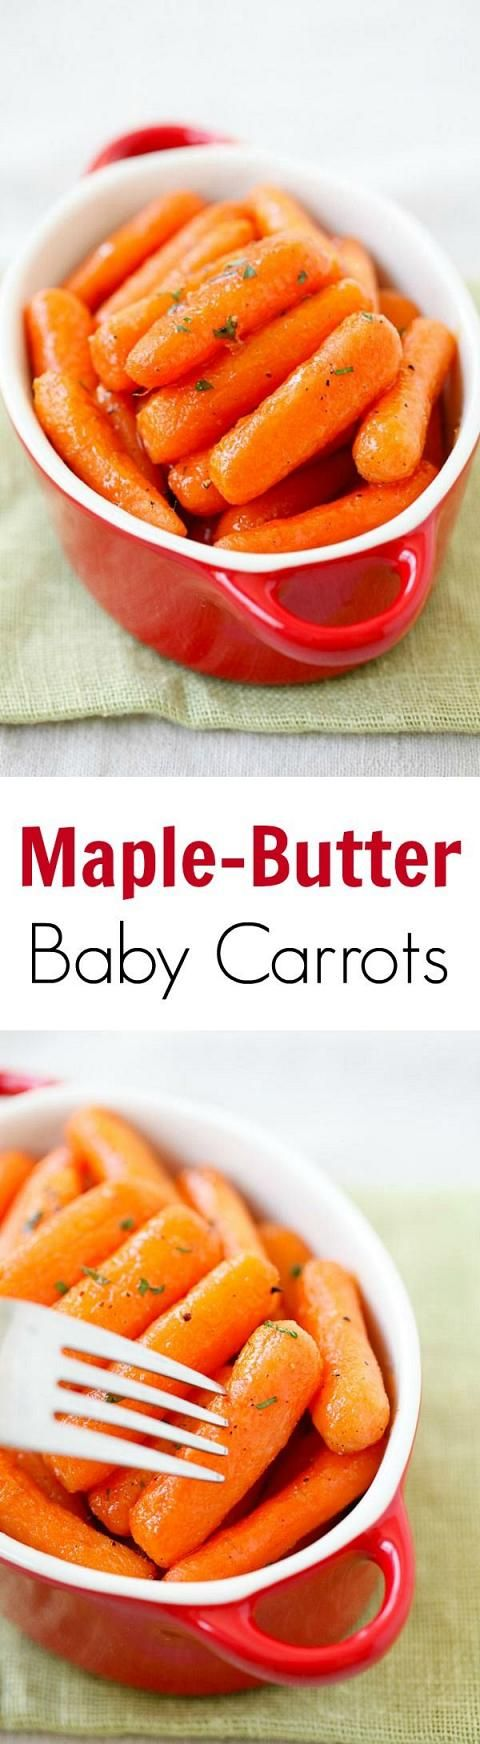 Maple-butter roasted baby carrots - tender and soft carrots roasted with sweet maple-butter. Great and healthy side dish for the entire family!! | rasamalaysia.com